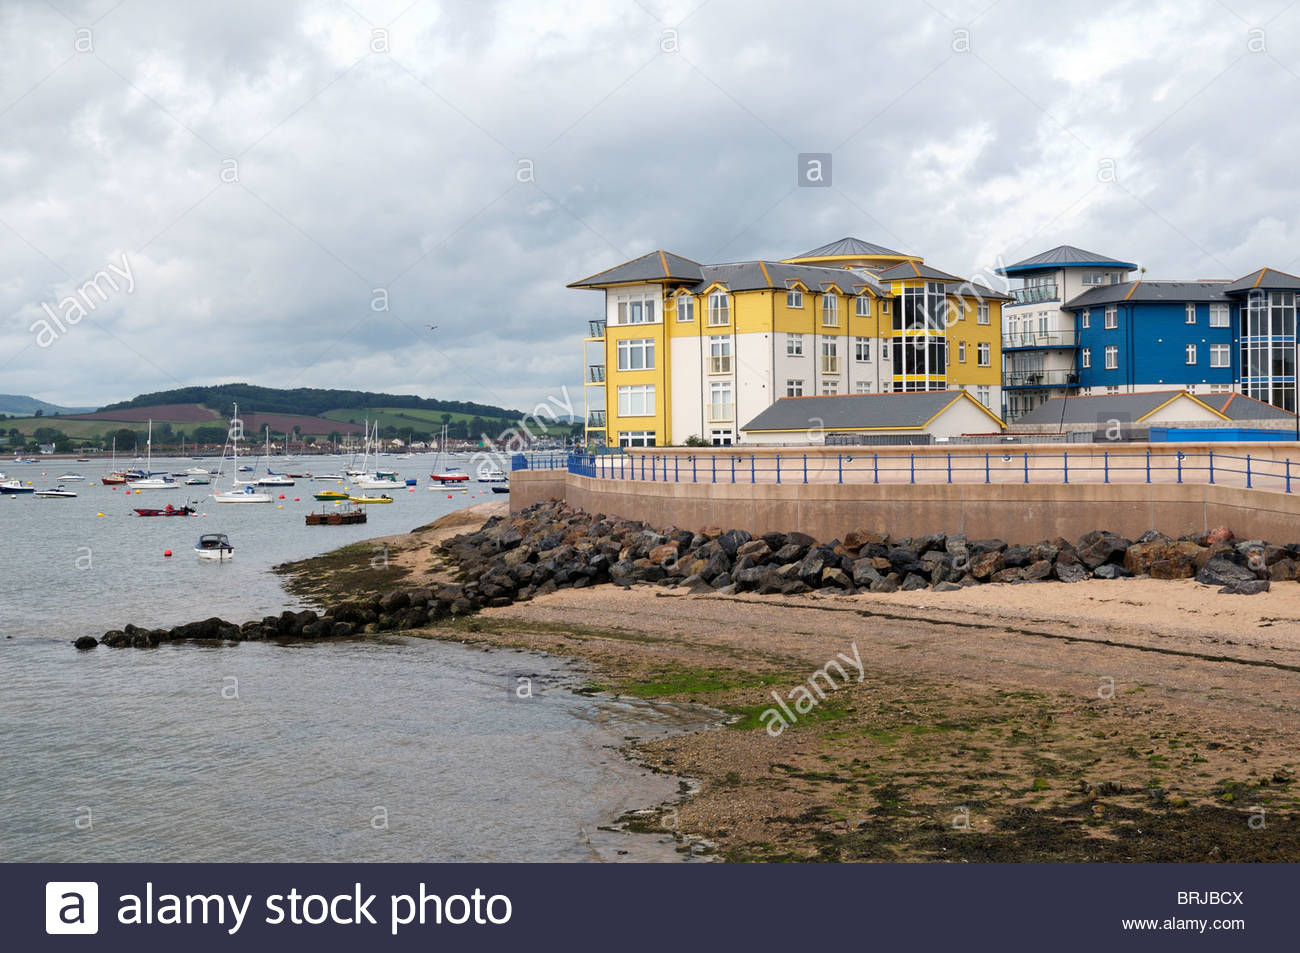 Cloudy day view of the River Exe at Exmouth in Devon, England - Stock Image